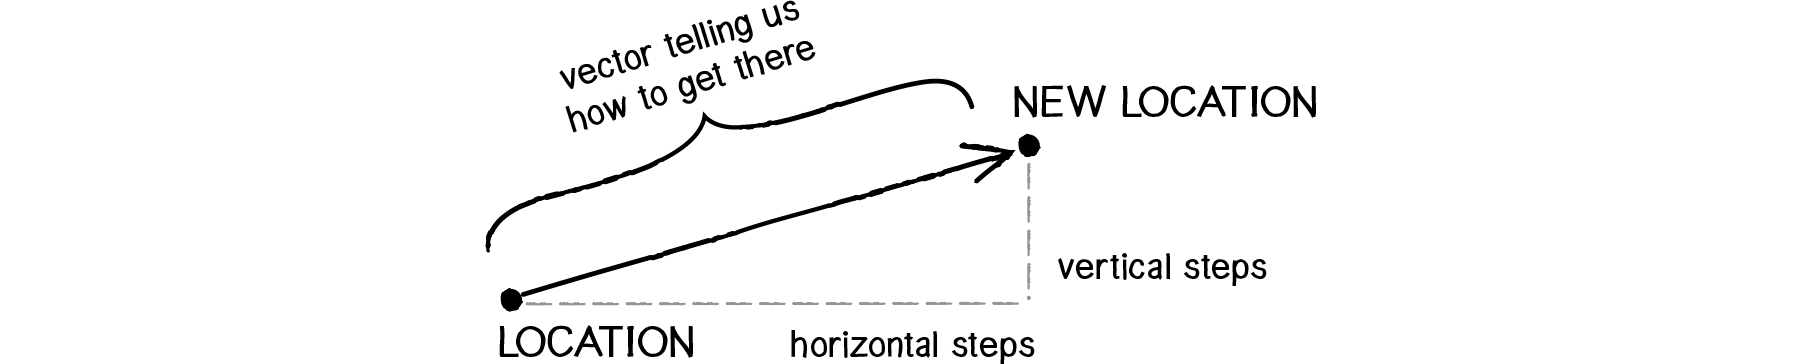 Diagram of using a vector to predict new location